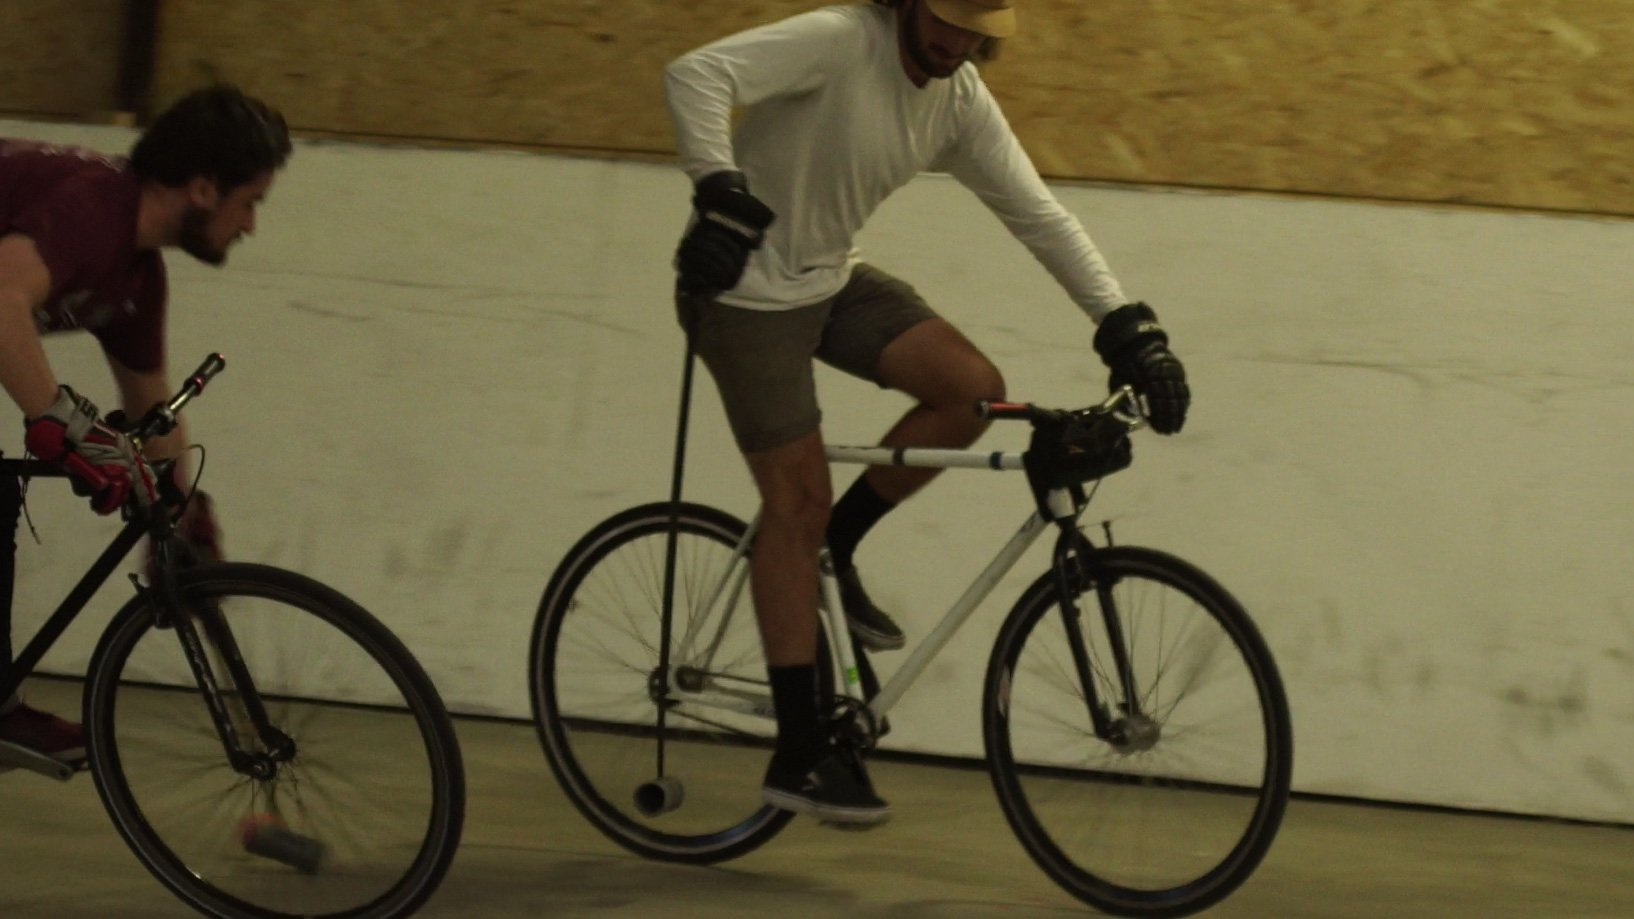 Fixie Bordeaux Il Est Possible De Faire Du Bike Polo à Bordeaux Fixie